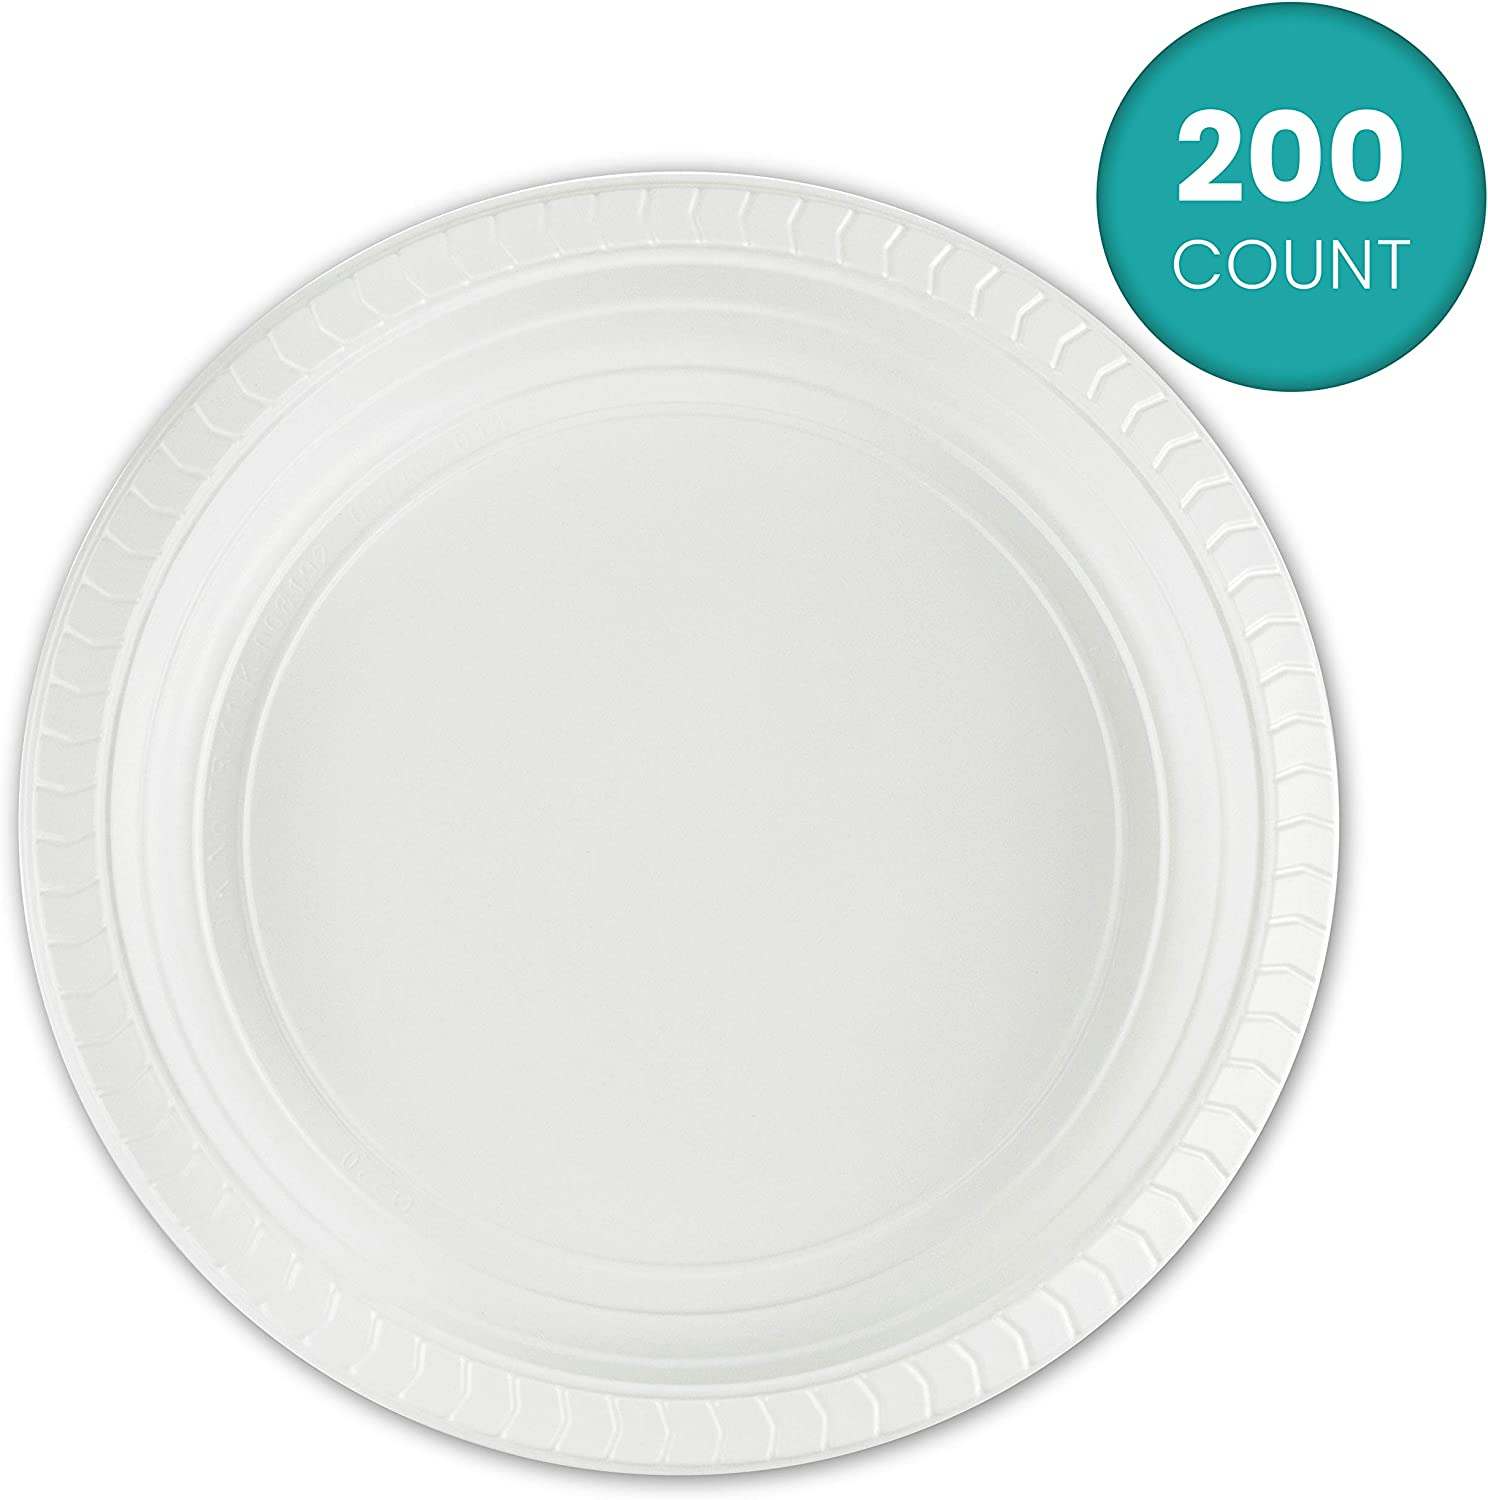 Plasticpro 7 inch Round Plastic Plates Microwaveable, Disposable, White, Dinnerware 200 Count